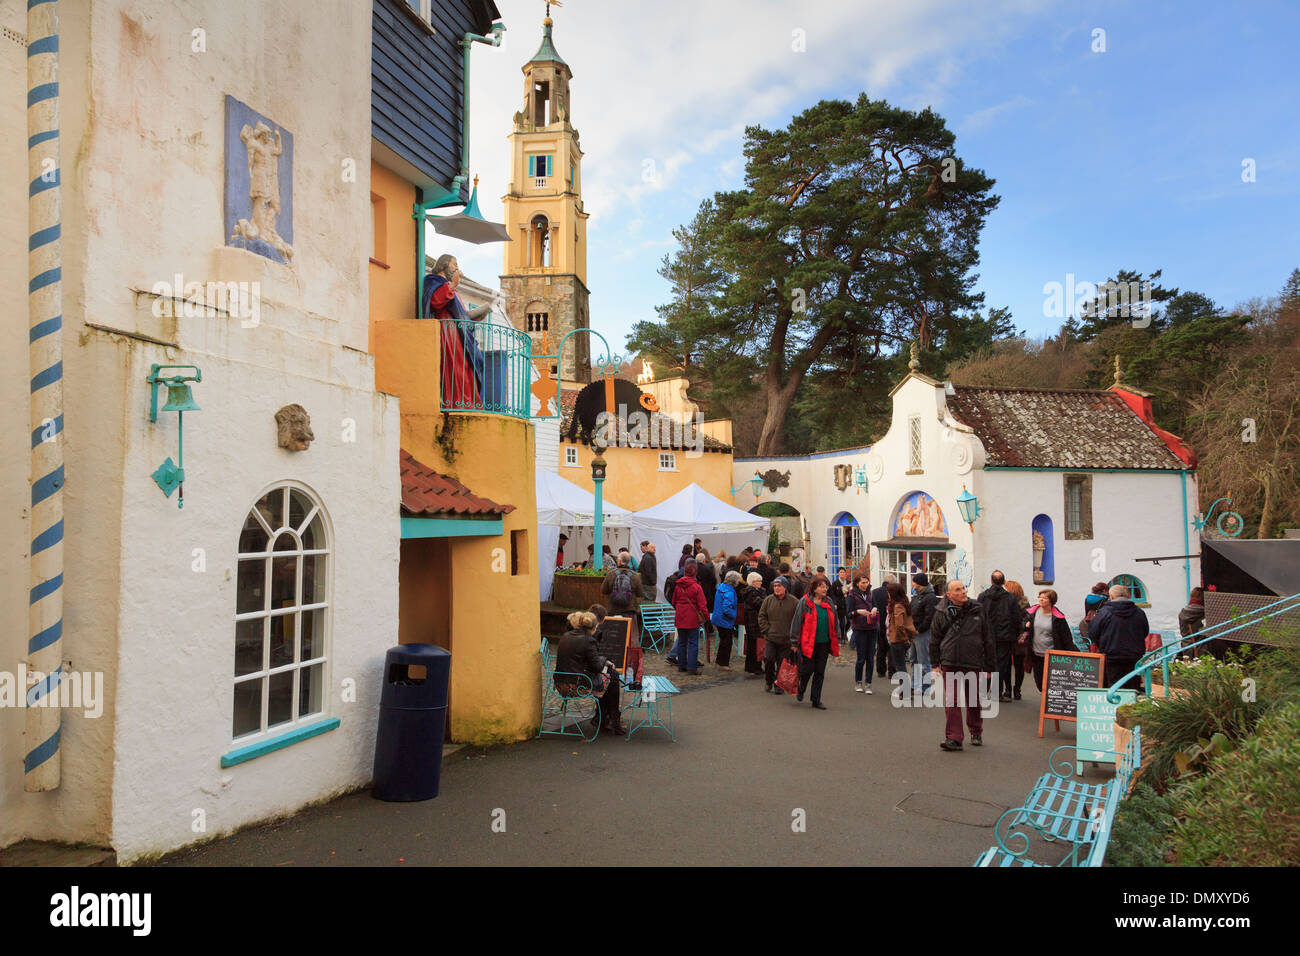 Visitors to Christmas Food and Craft Fair in Italian style tourists' village of Portmeirion, Gwynedd, North Wales, Stock Photo